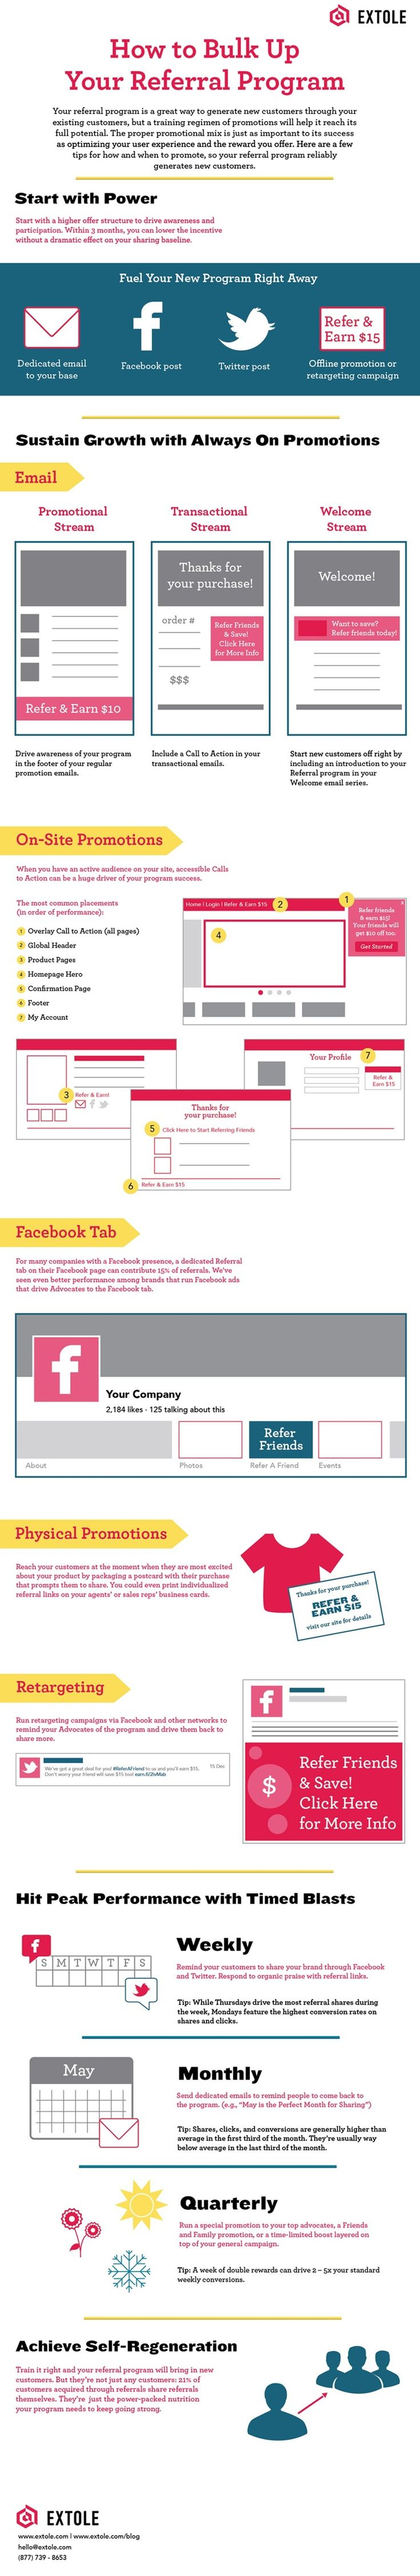 Mobile - How to Bulk Up Your Referral Program [Infographic] : MarketingProfs Article